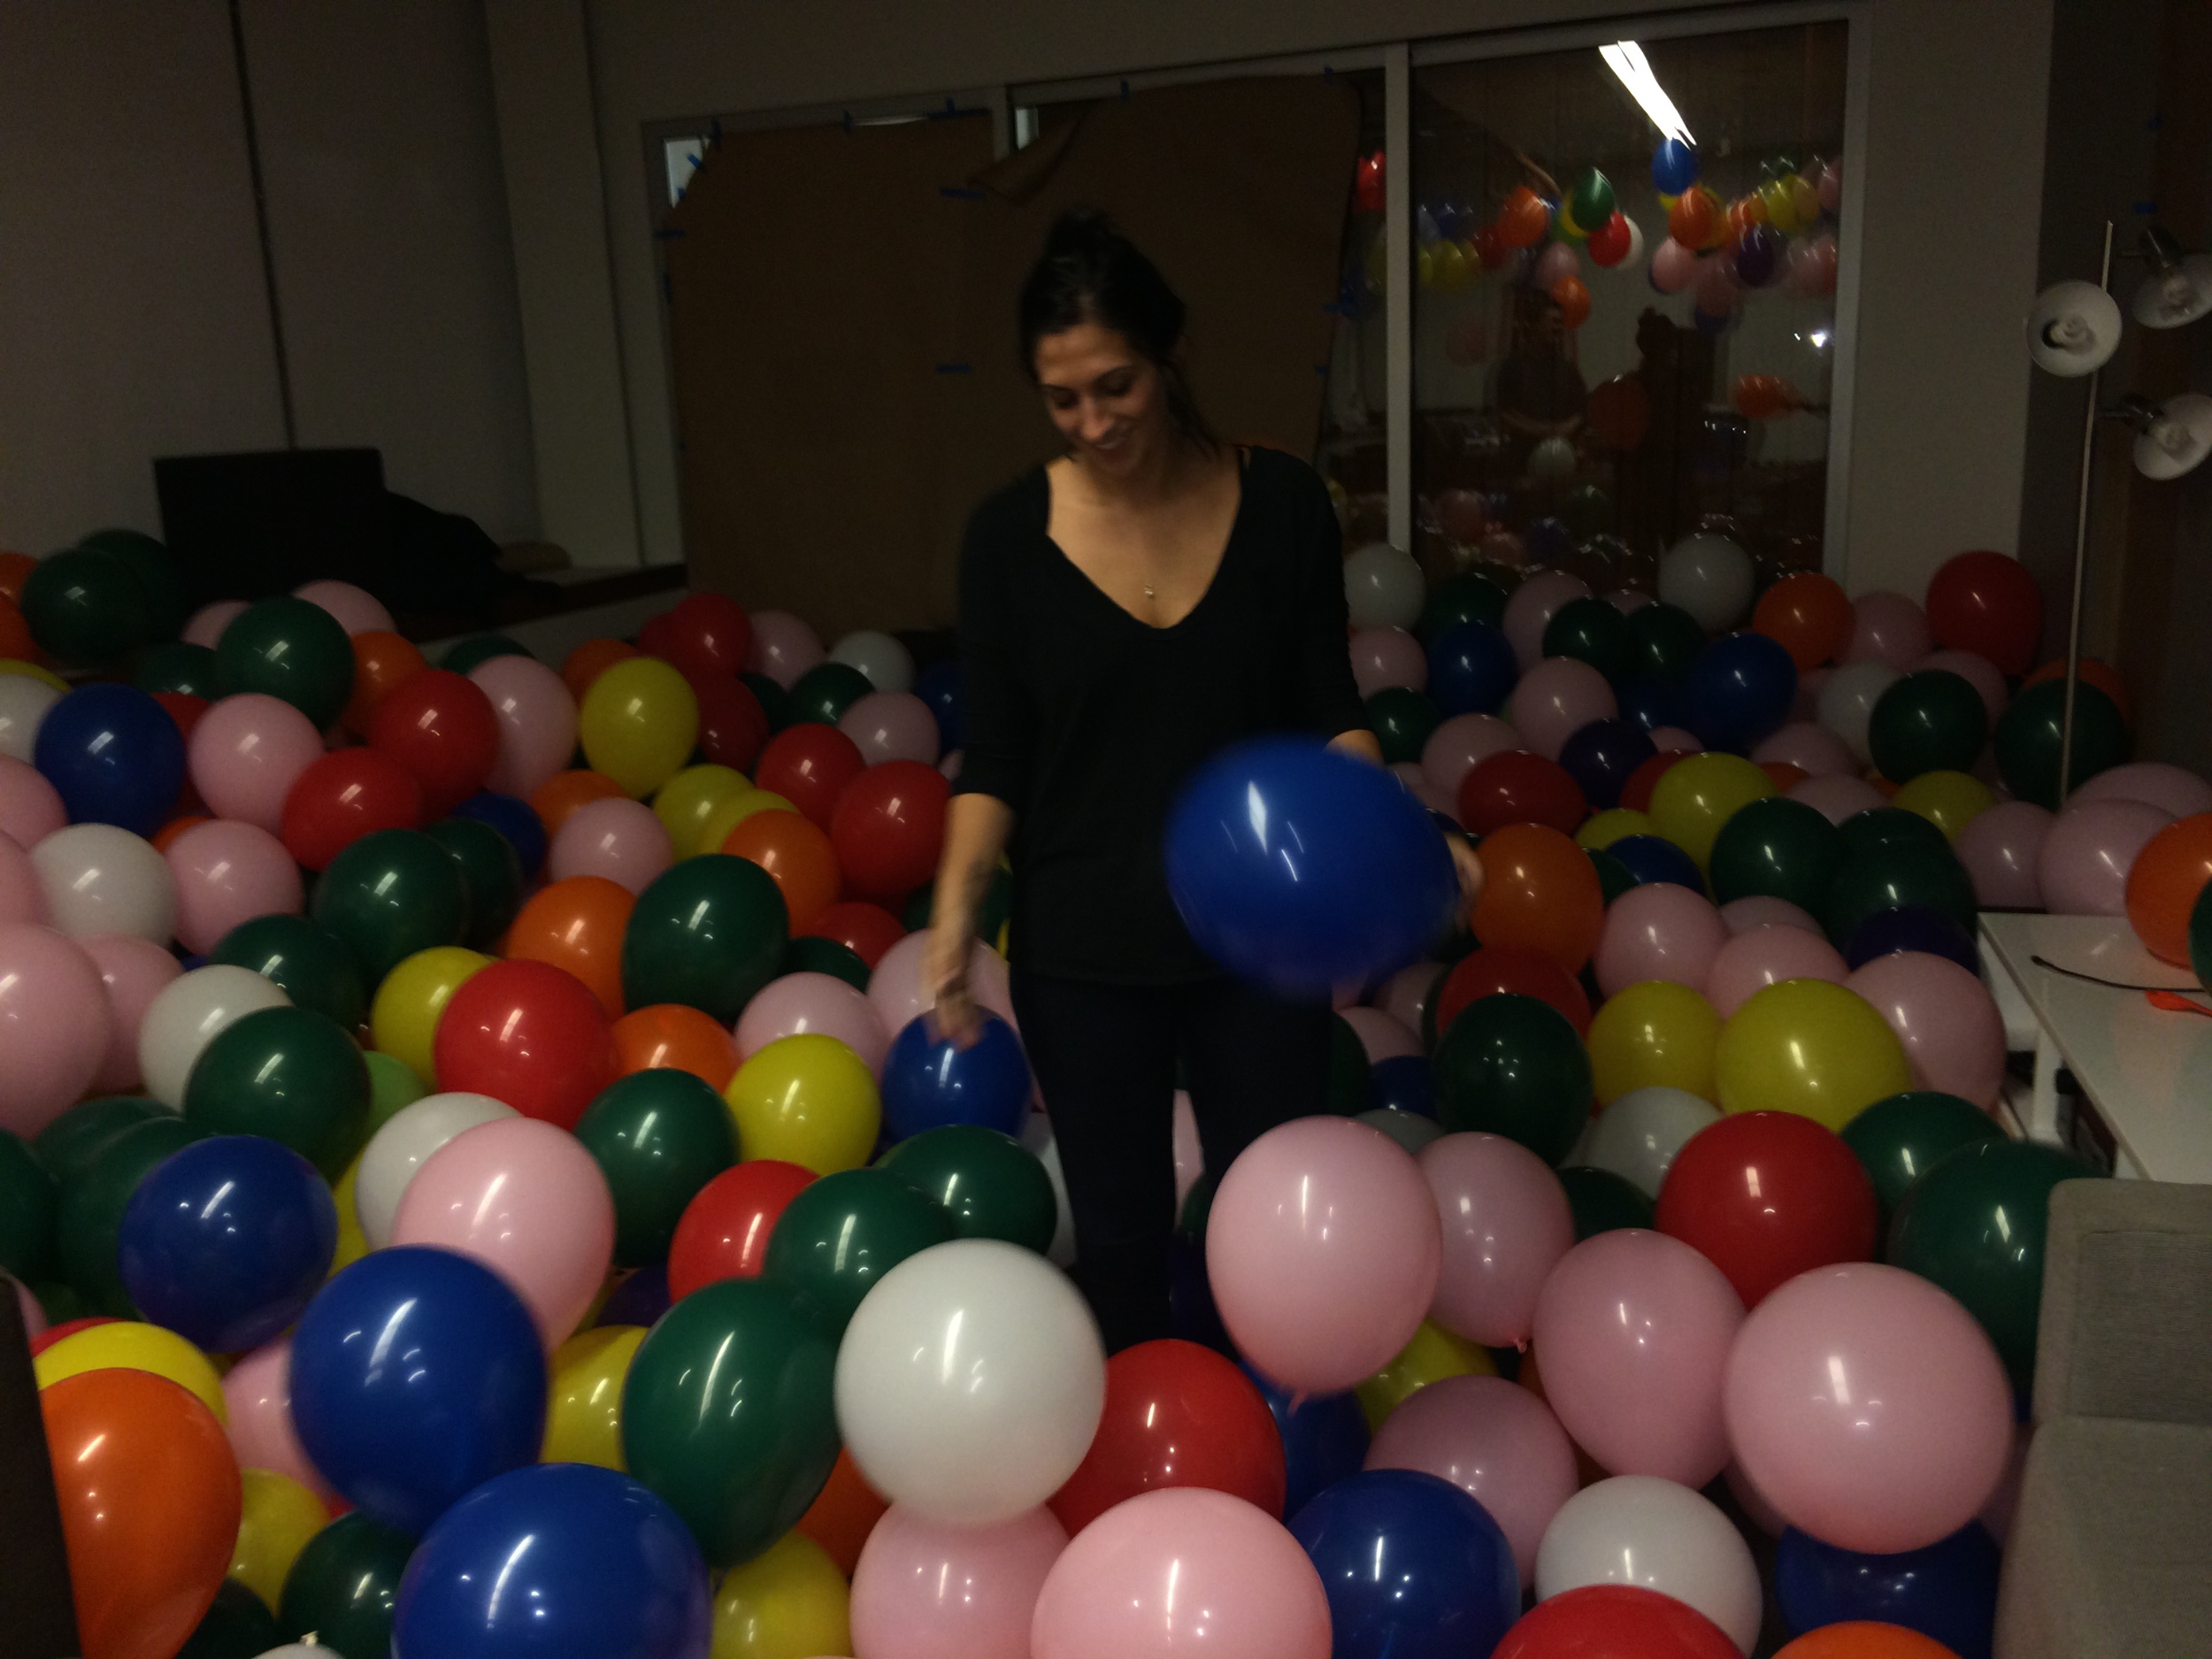 Filling the 72u room with 3000 balloons. Day 1.